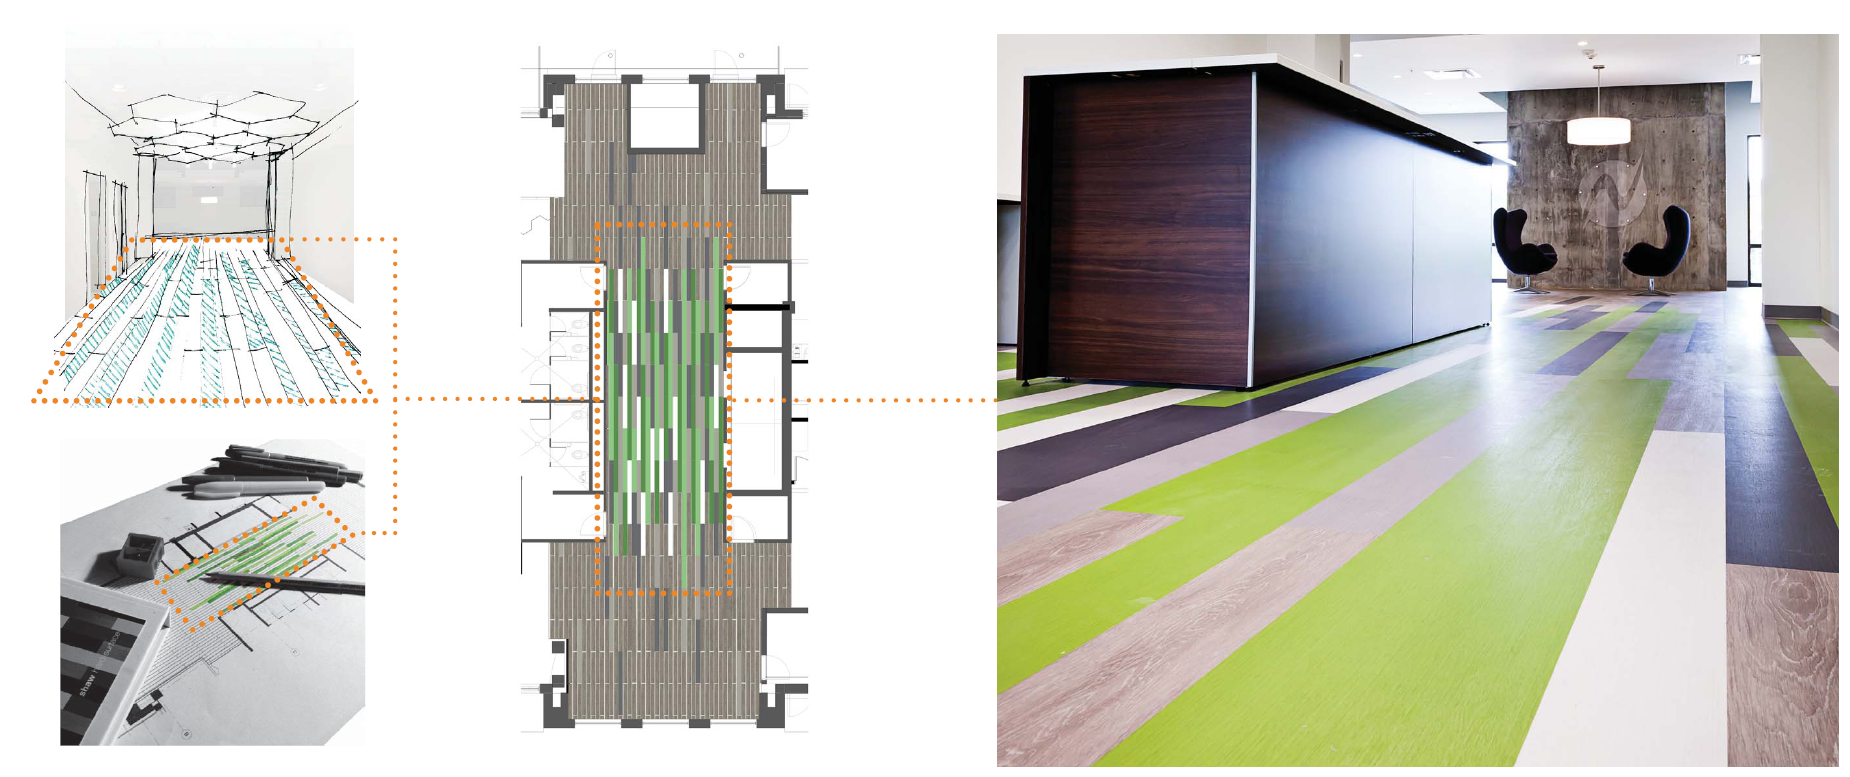 Netchex-Greenleaf-Lawson-Architects-Floor-Inspiration.PNG